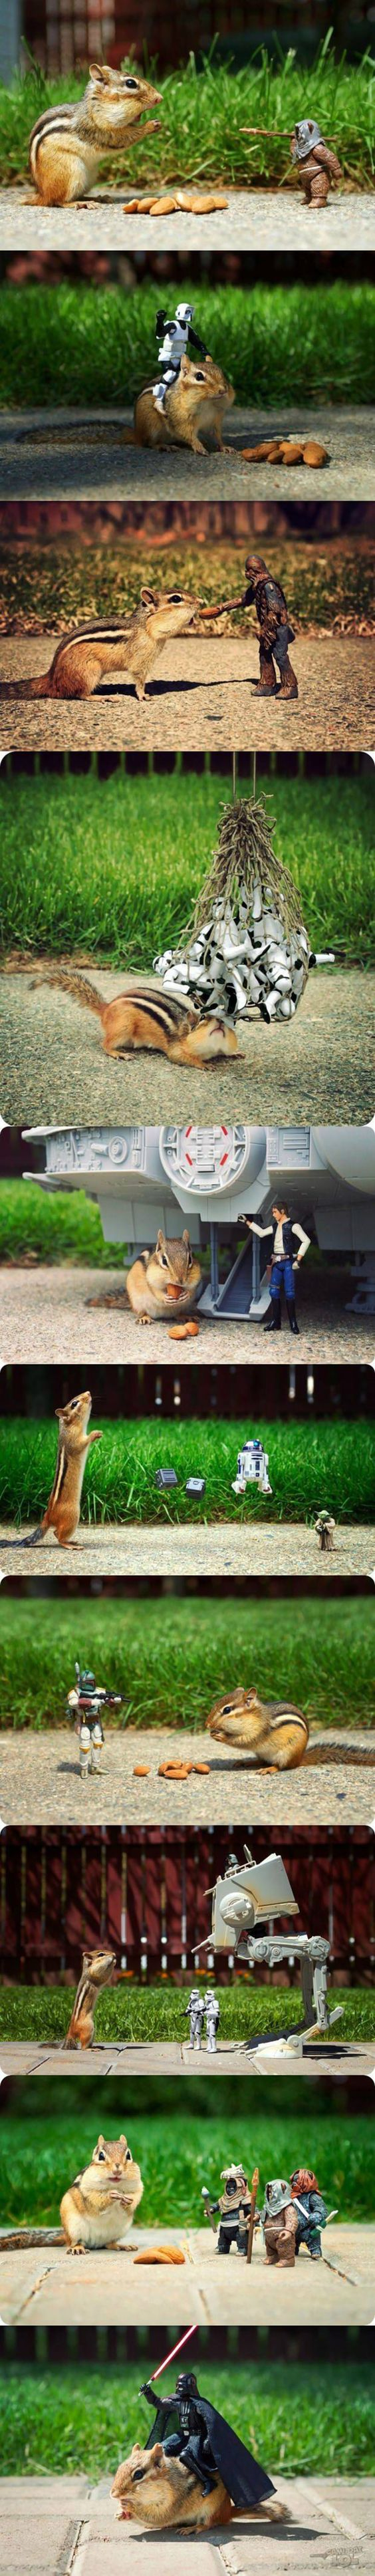 More Star Wars figures in action :-)